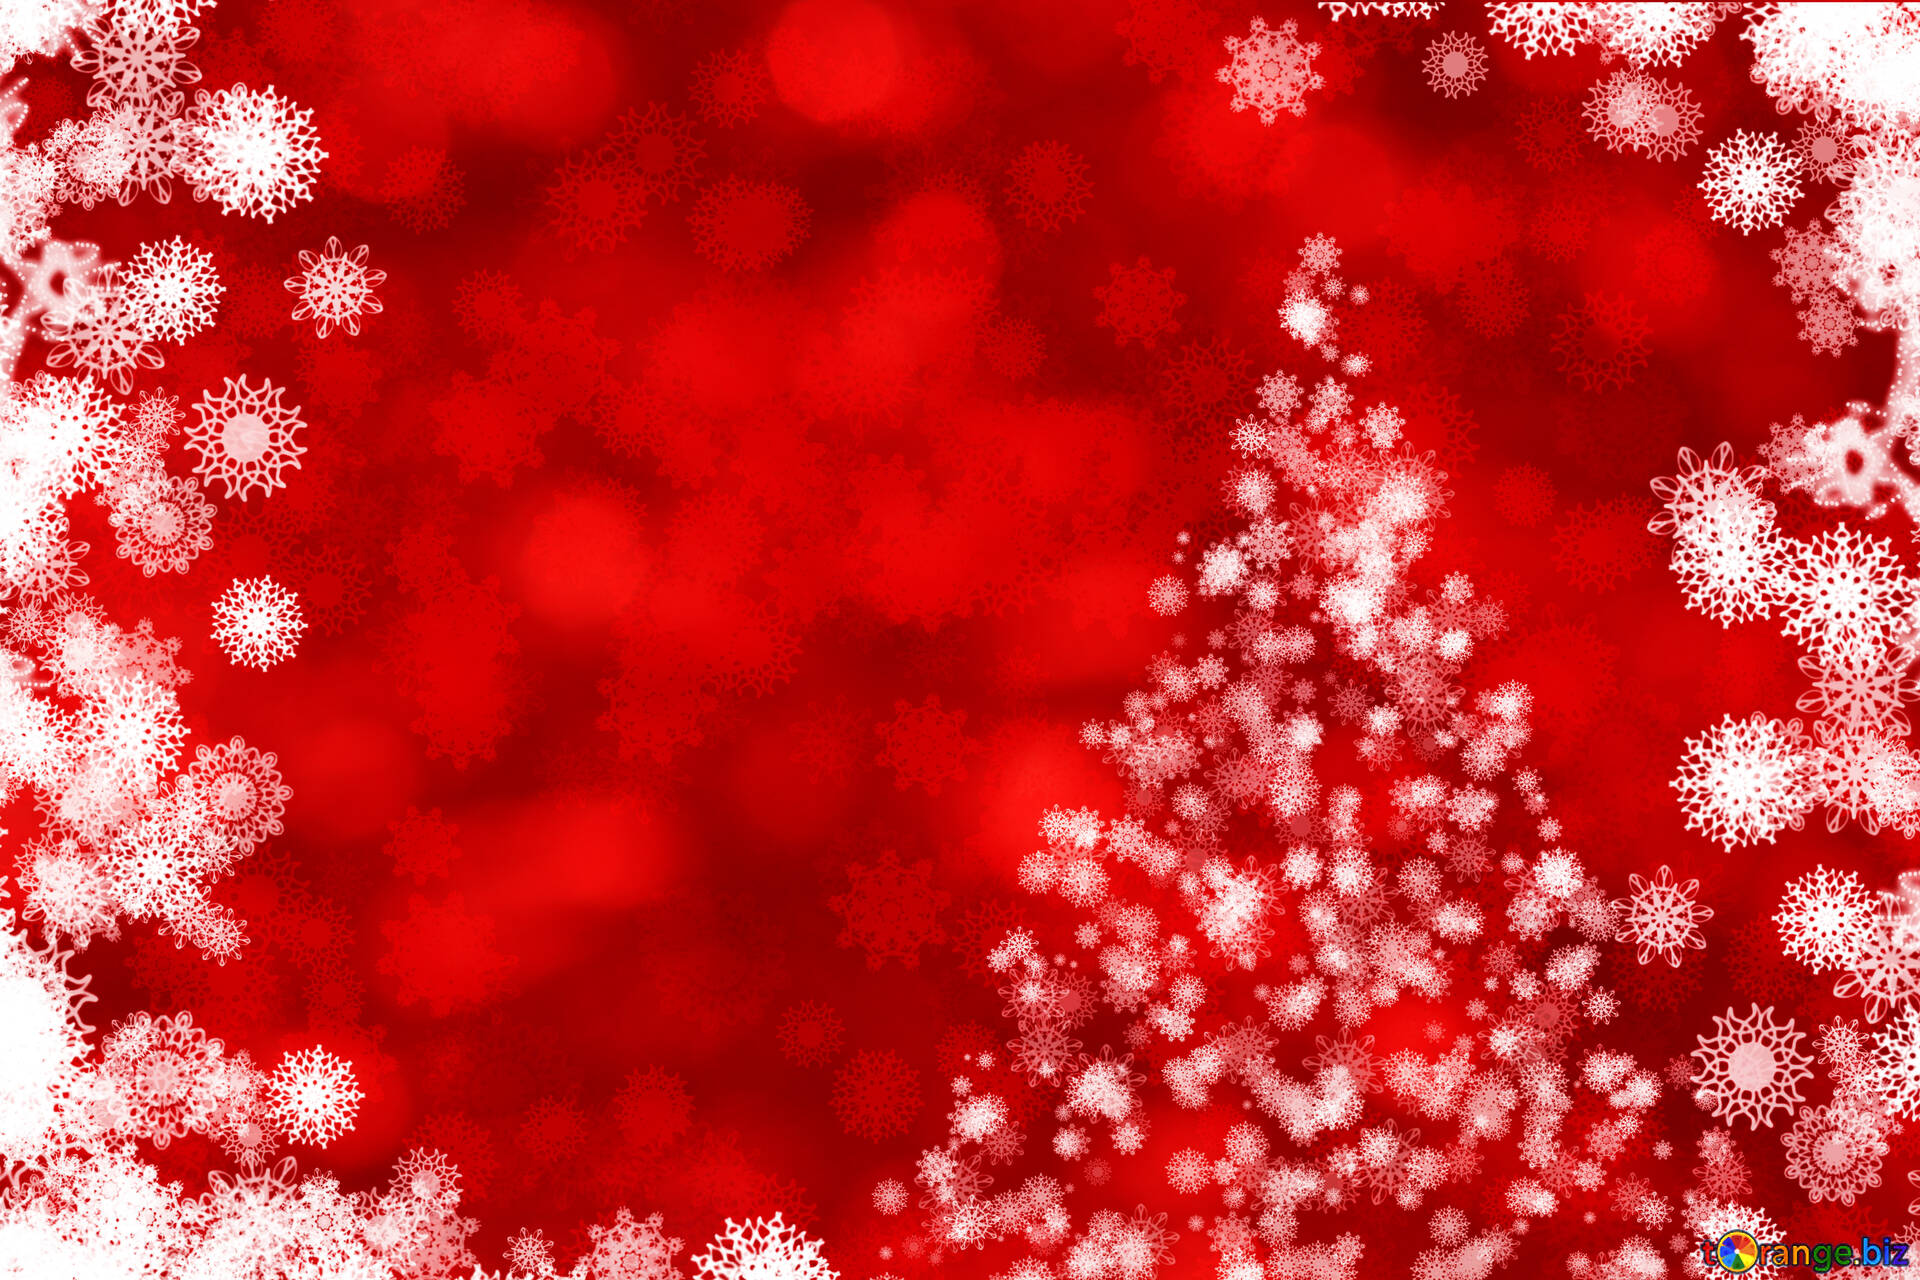 new year backgrounds christmas background christmas 40732 new year backgrounds christmas background christmas 40732